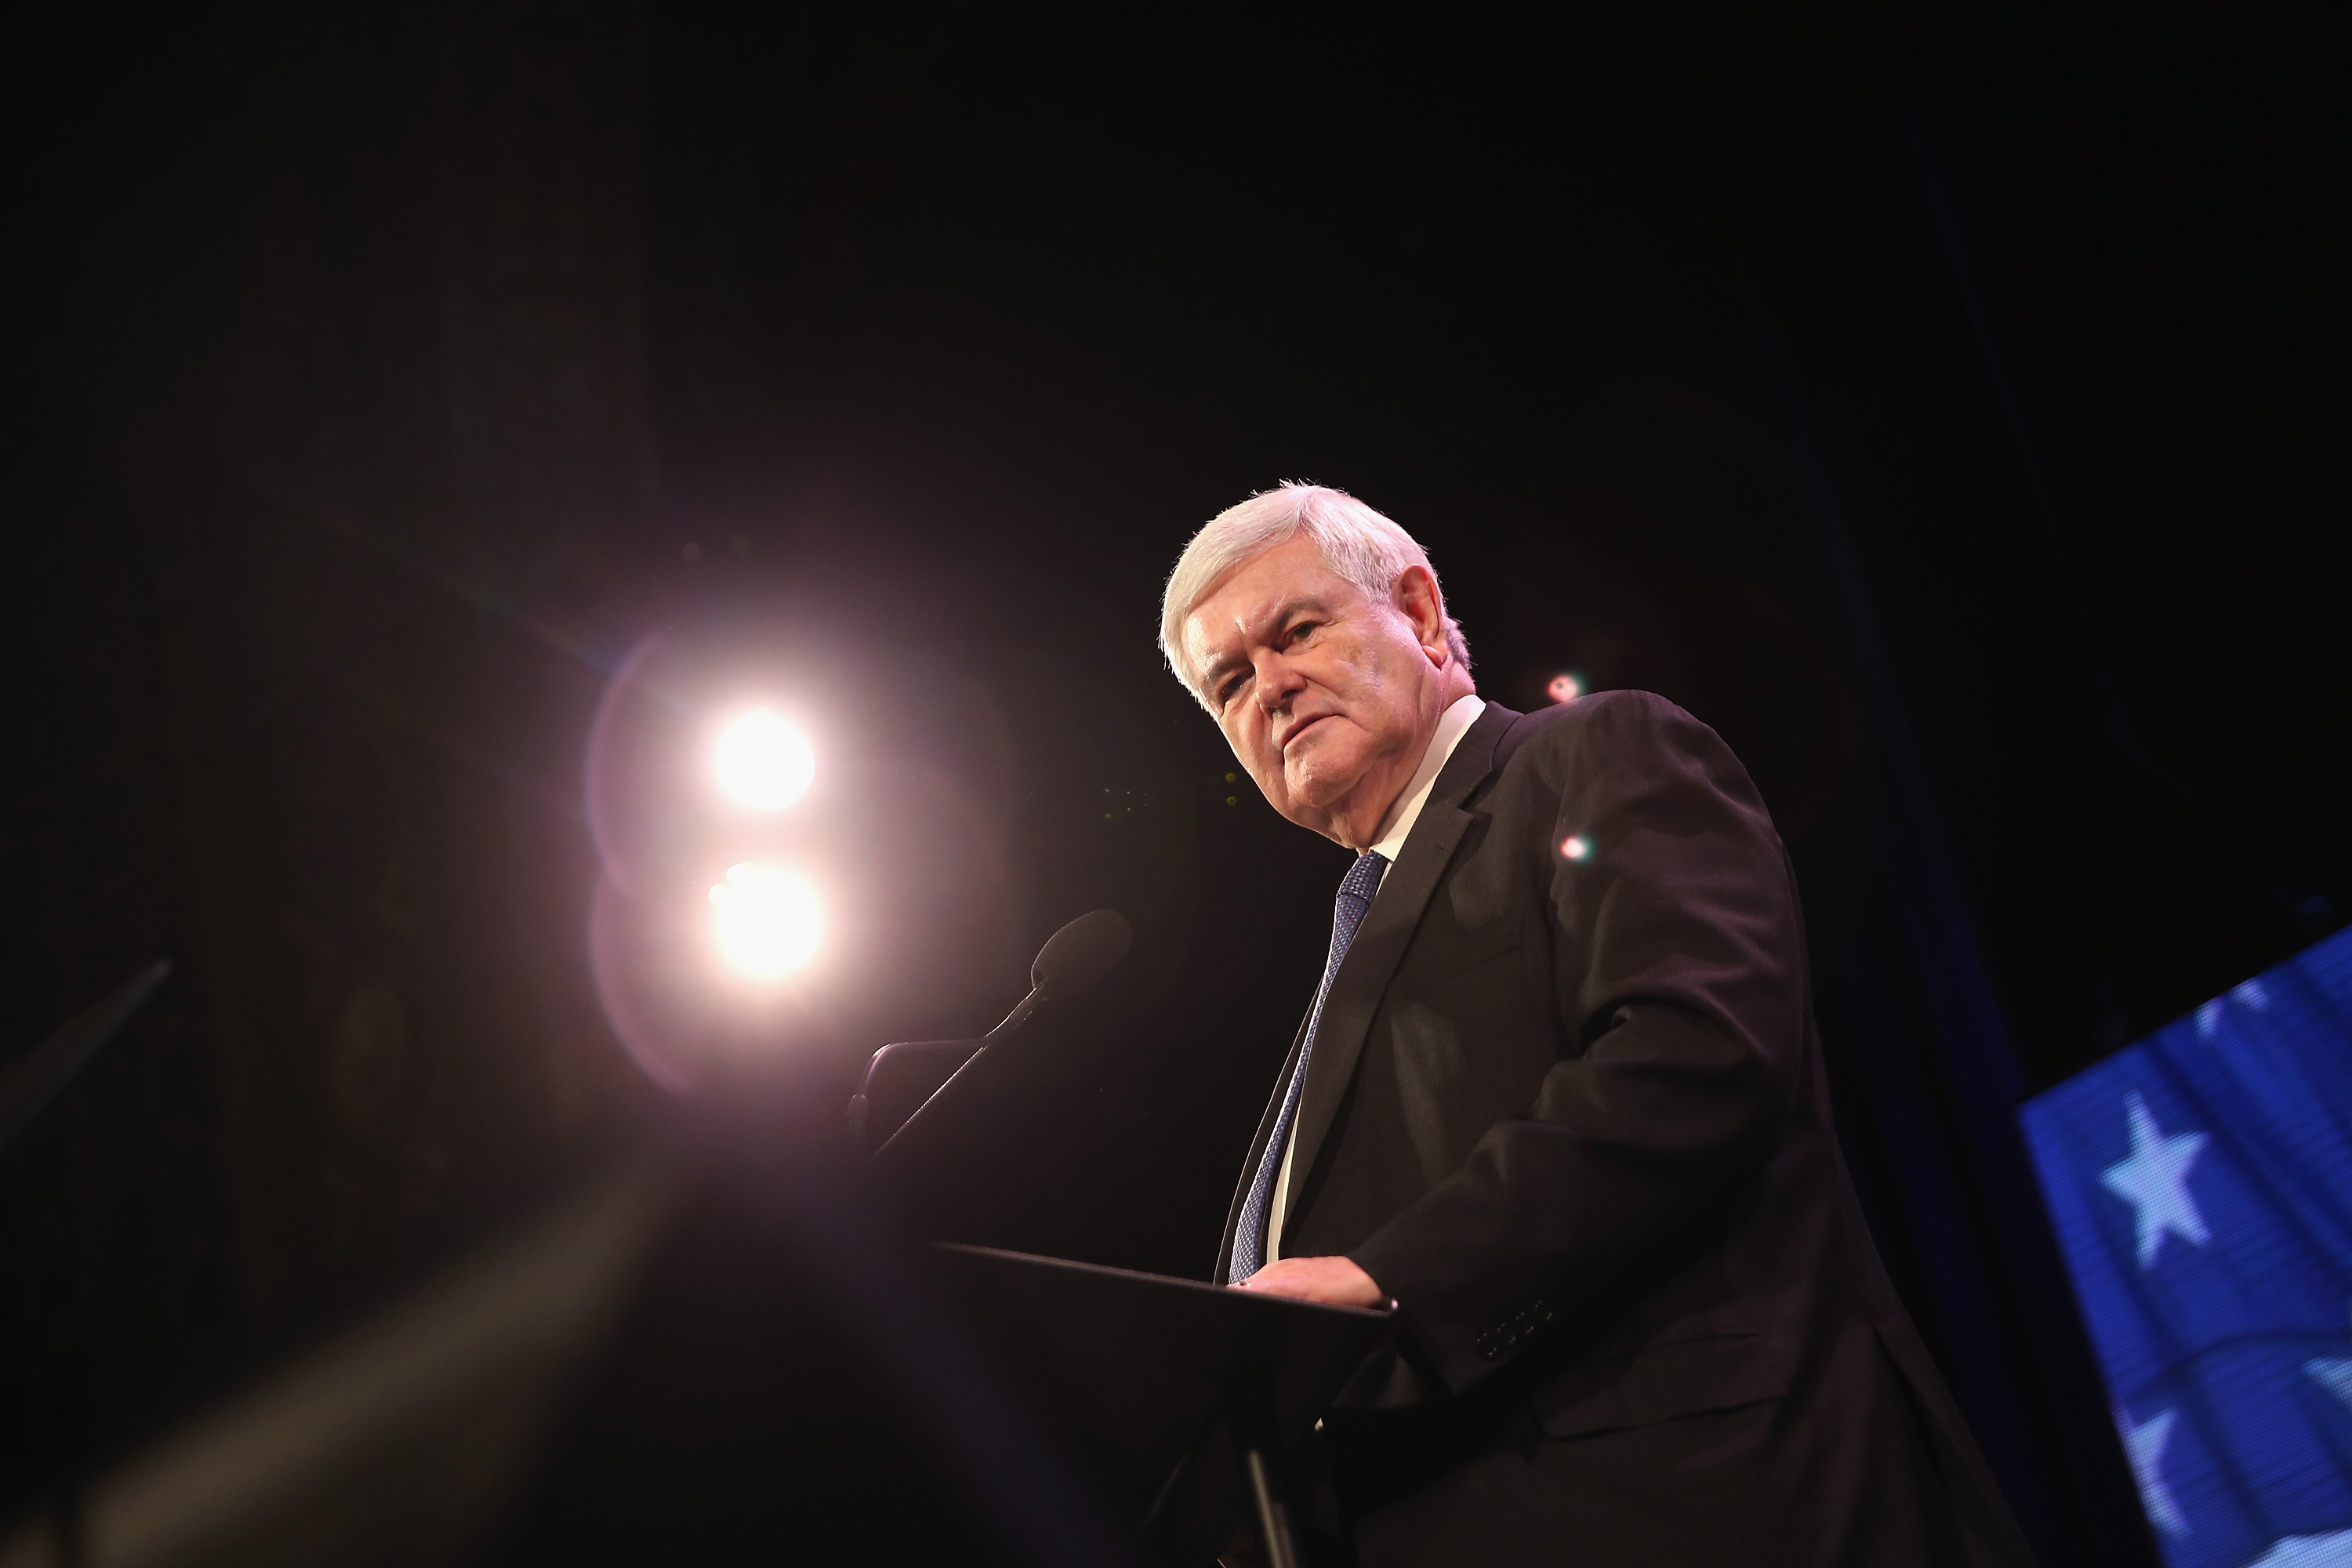 Former Speaker of the House Newt Gingrich speaking at an event titled a  Freedom Summit  on January 24, 2015, while not understanding Sharia law.